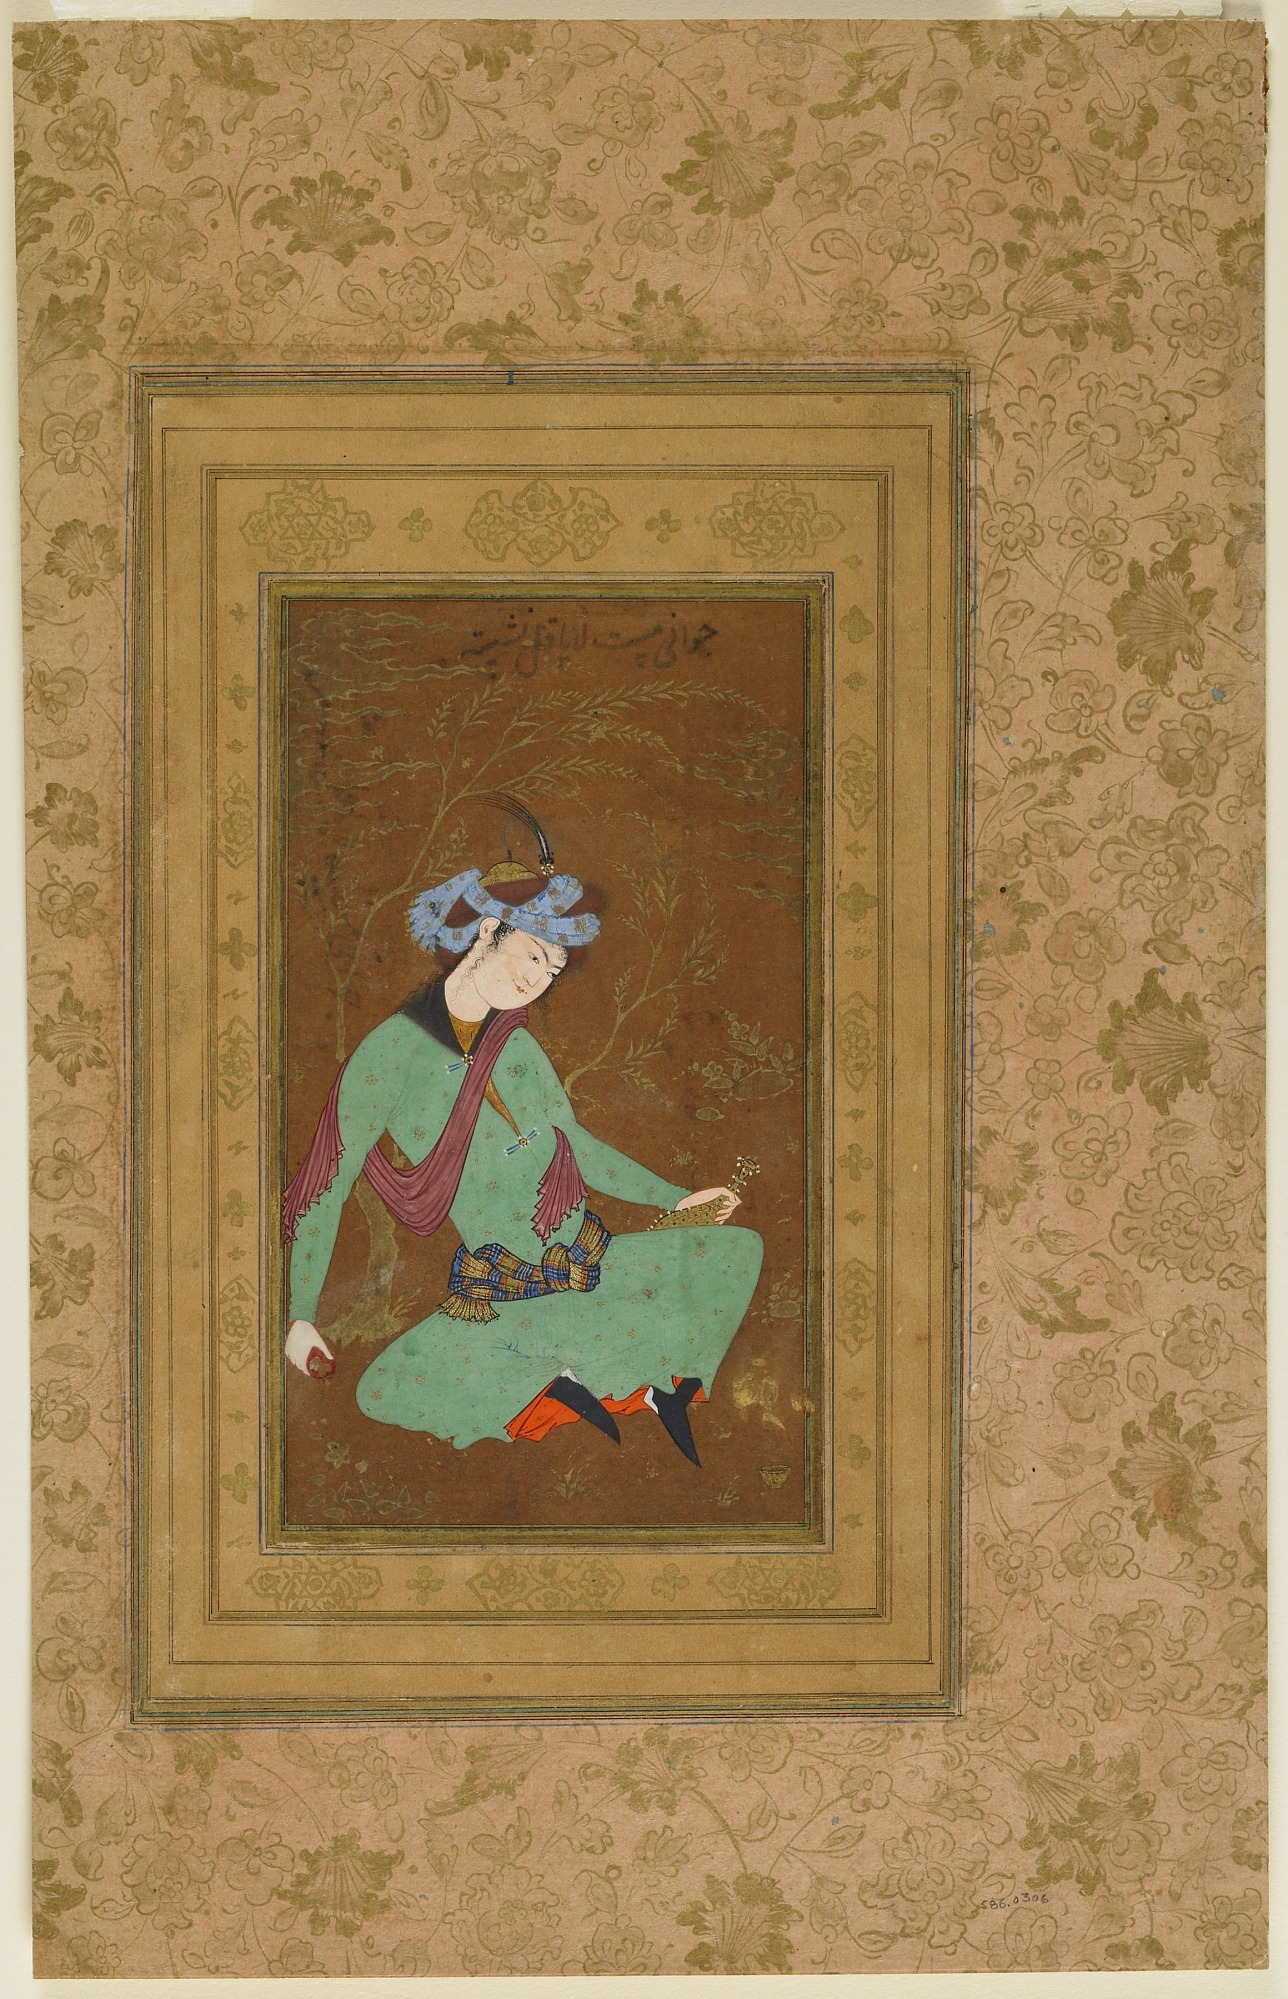 Seated youth in green robe